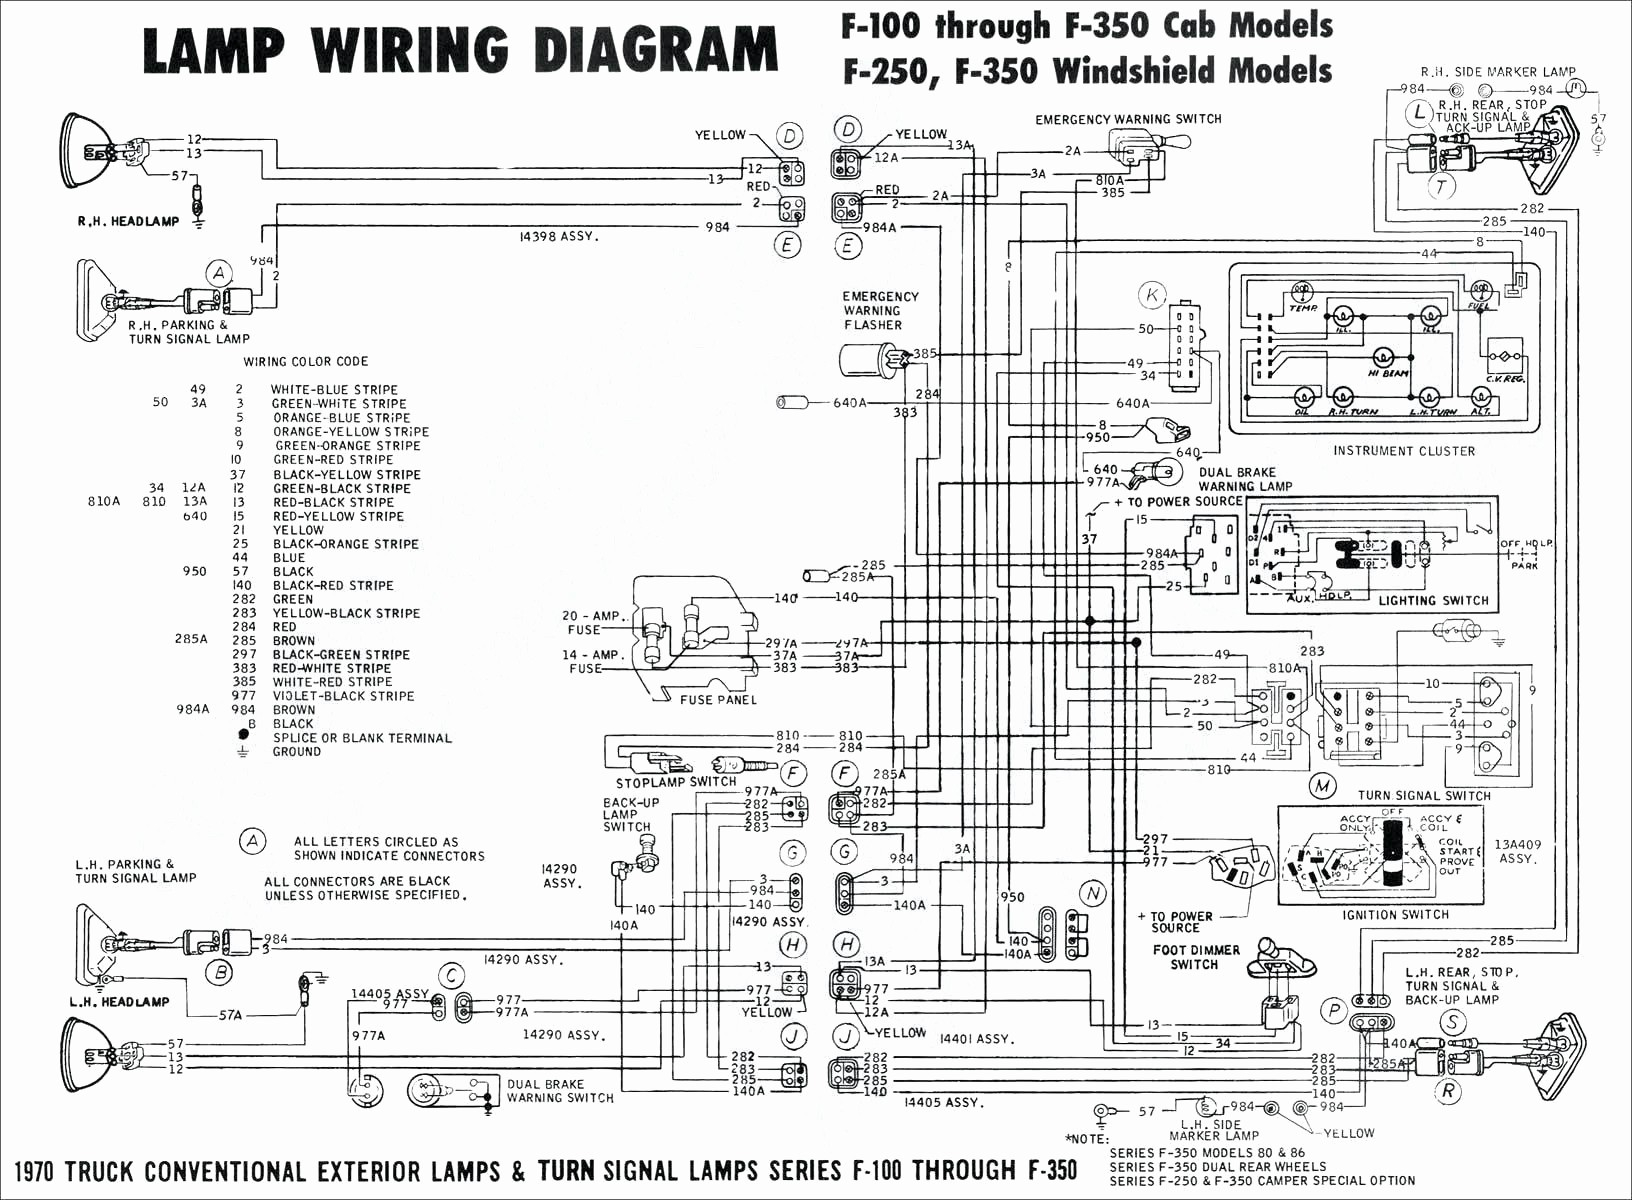 [DIAGRAM] 2006 Silverado Tail Light Wiring Diagram 1500